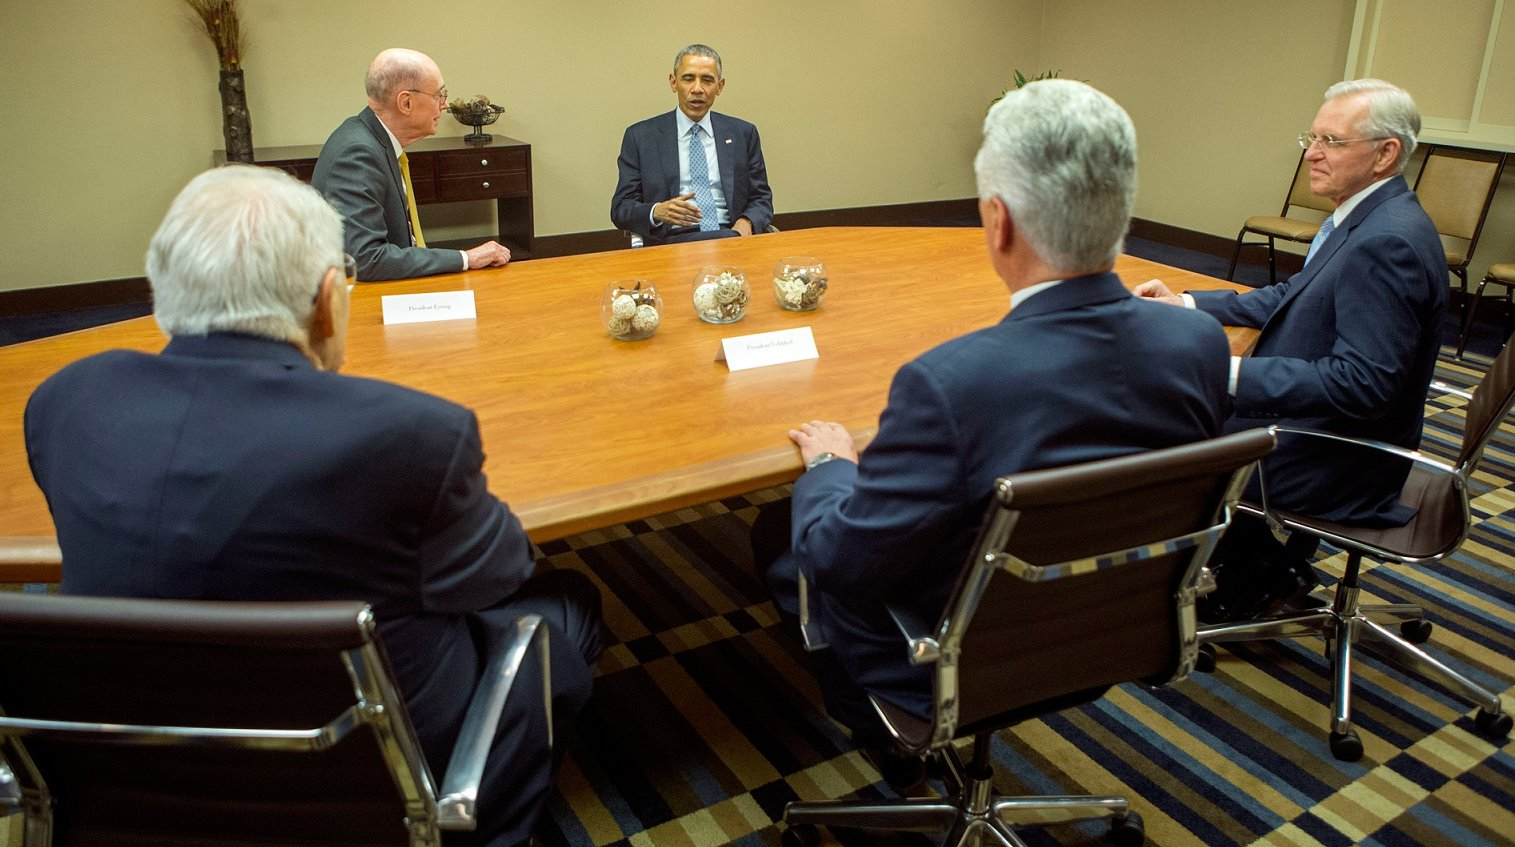 Obama meets with LDS leaders